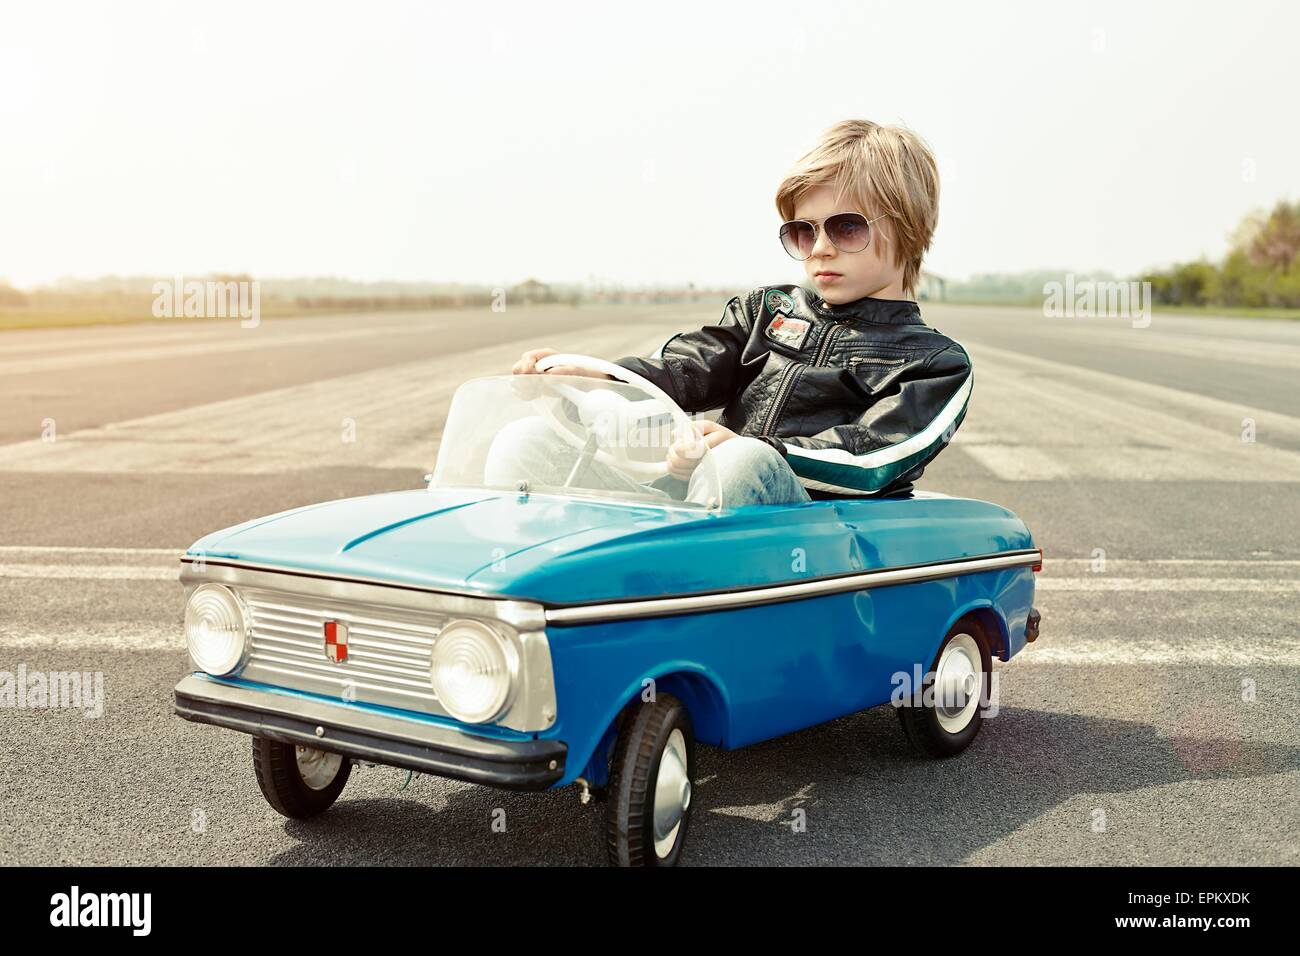 Cool boy in pedal car on race track - Stock Image